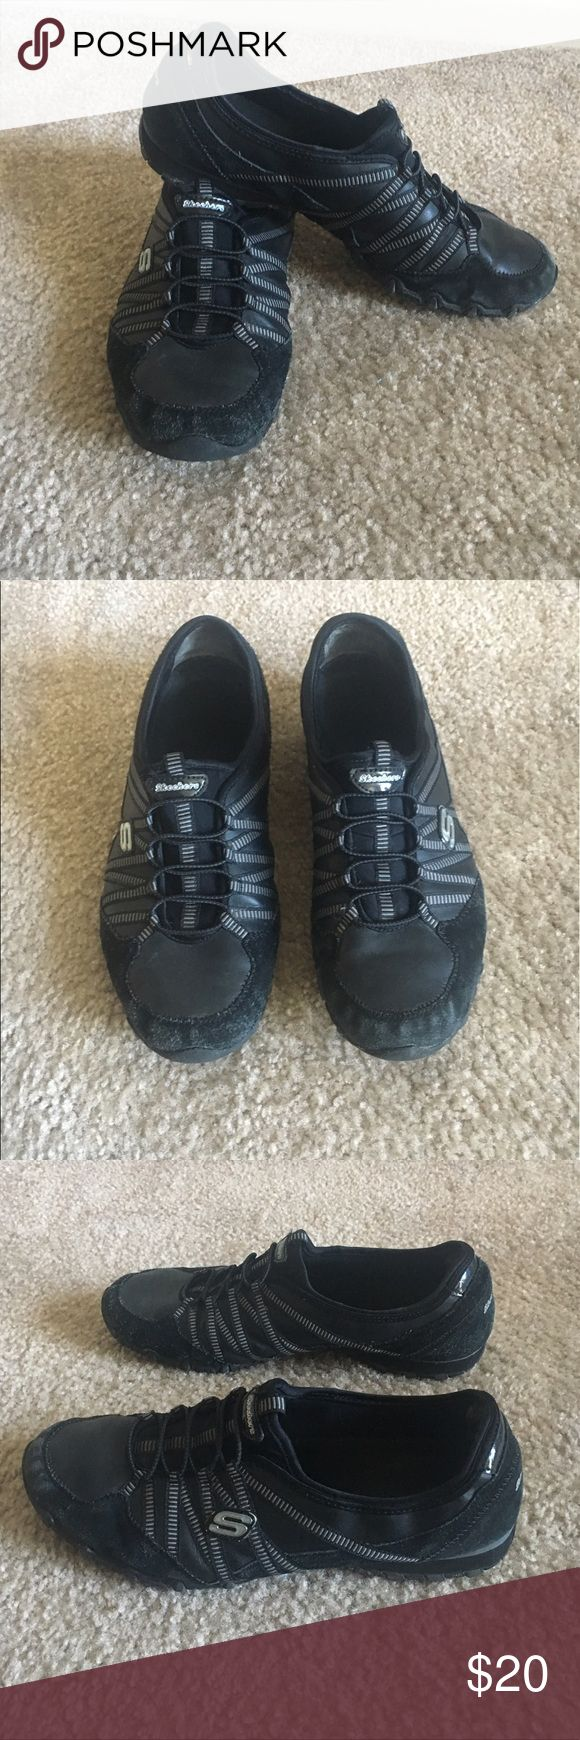 Black Slip On Sketchers Sneakers Good condition. Gently worn. Only defects are shown in last picture. I accept offers and bundles. Skechers Shoes Athletic Shoes